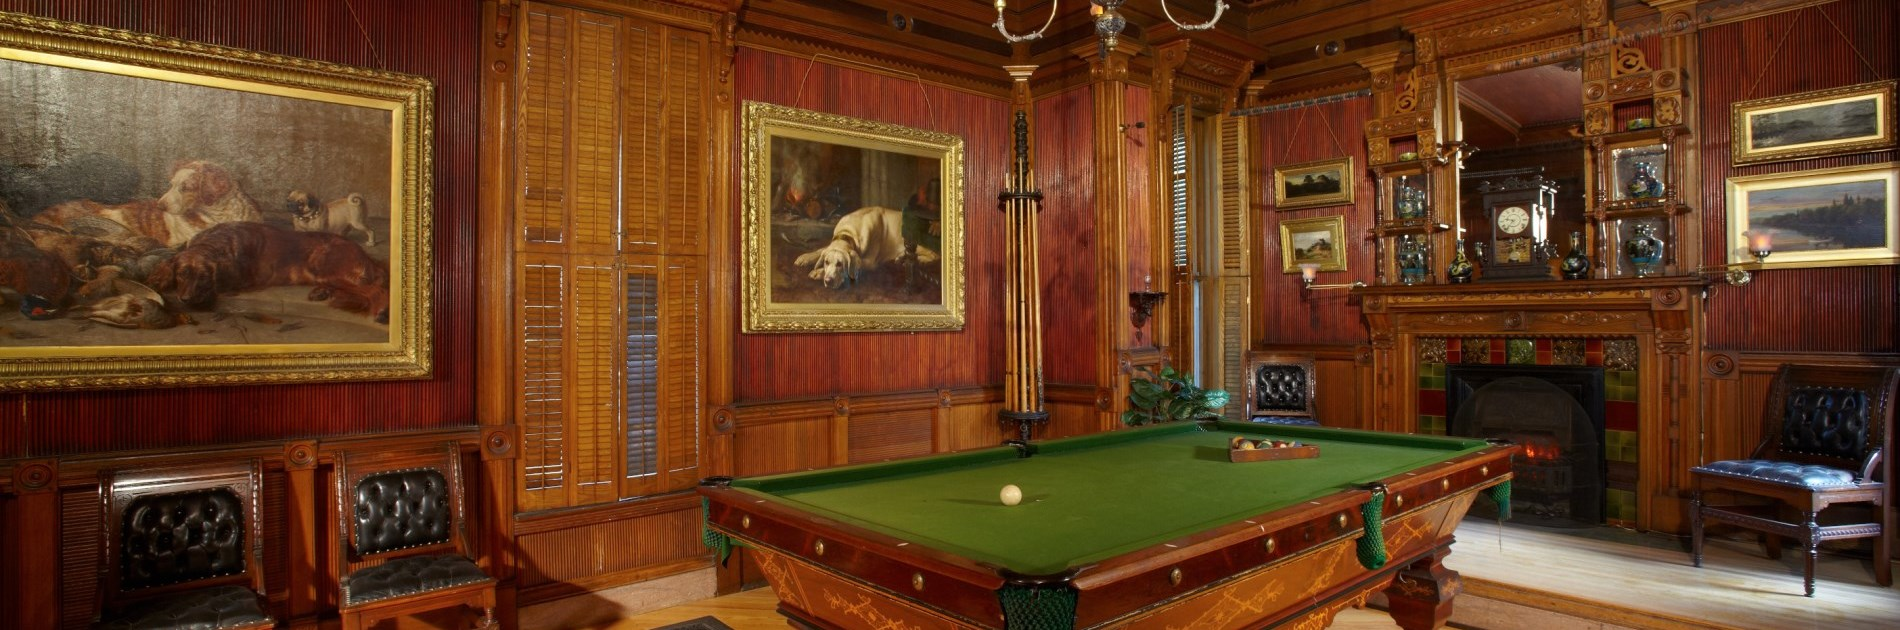 Glanmore National Historic Site Billiard Room